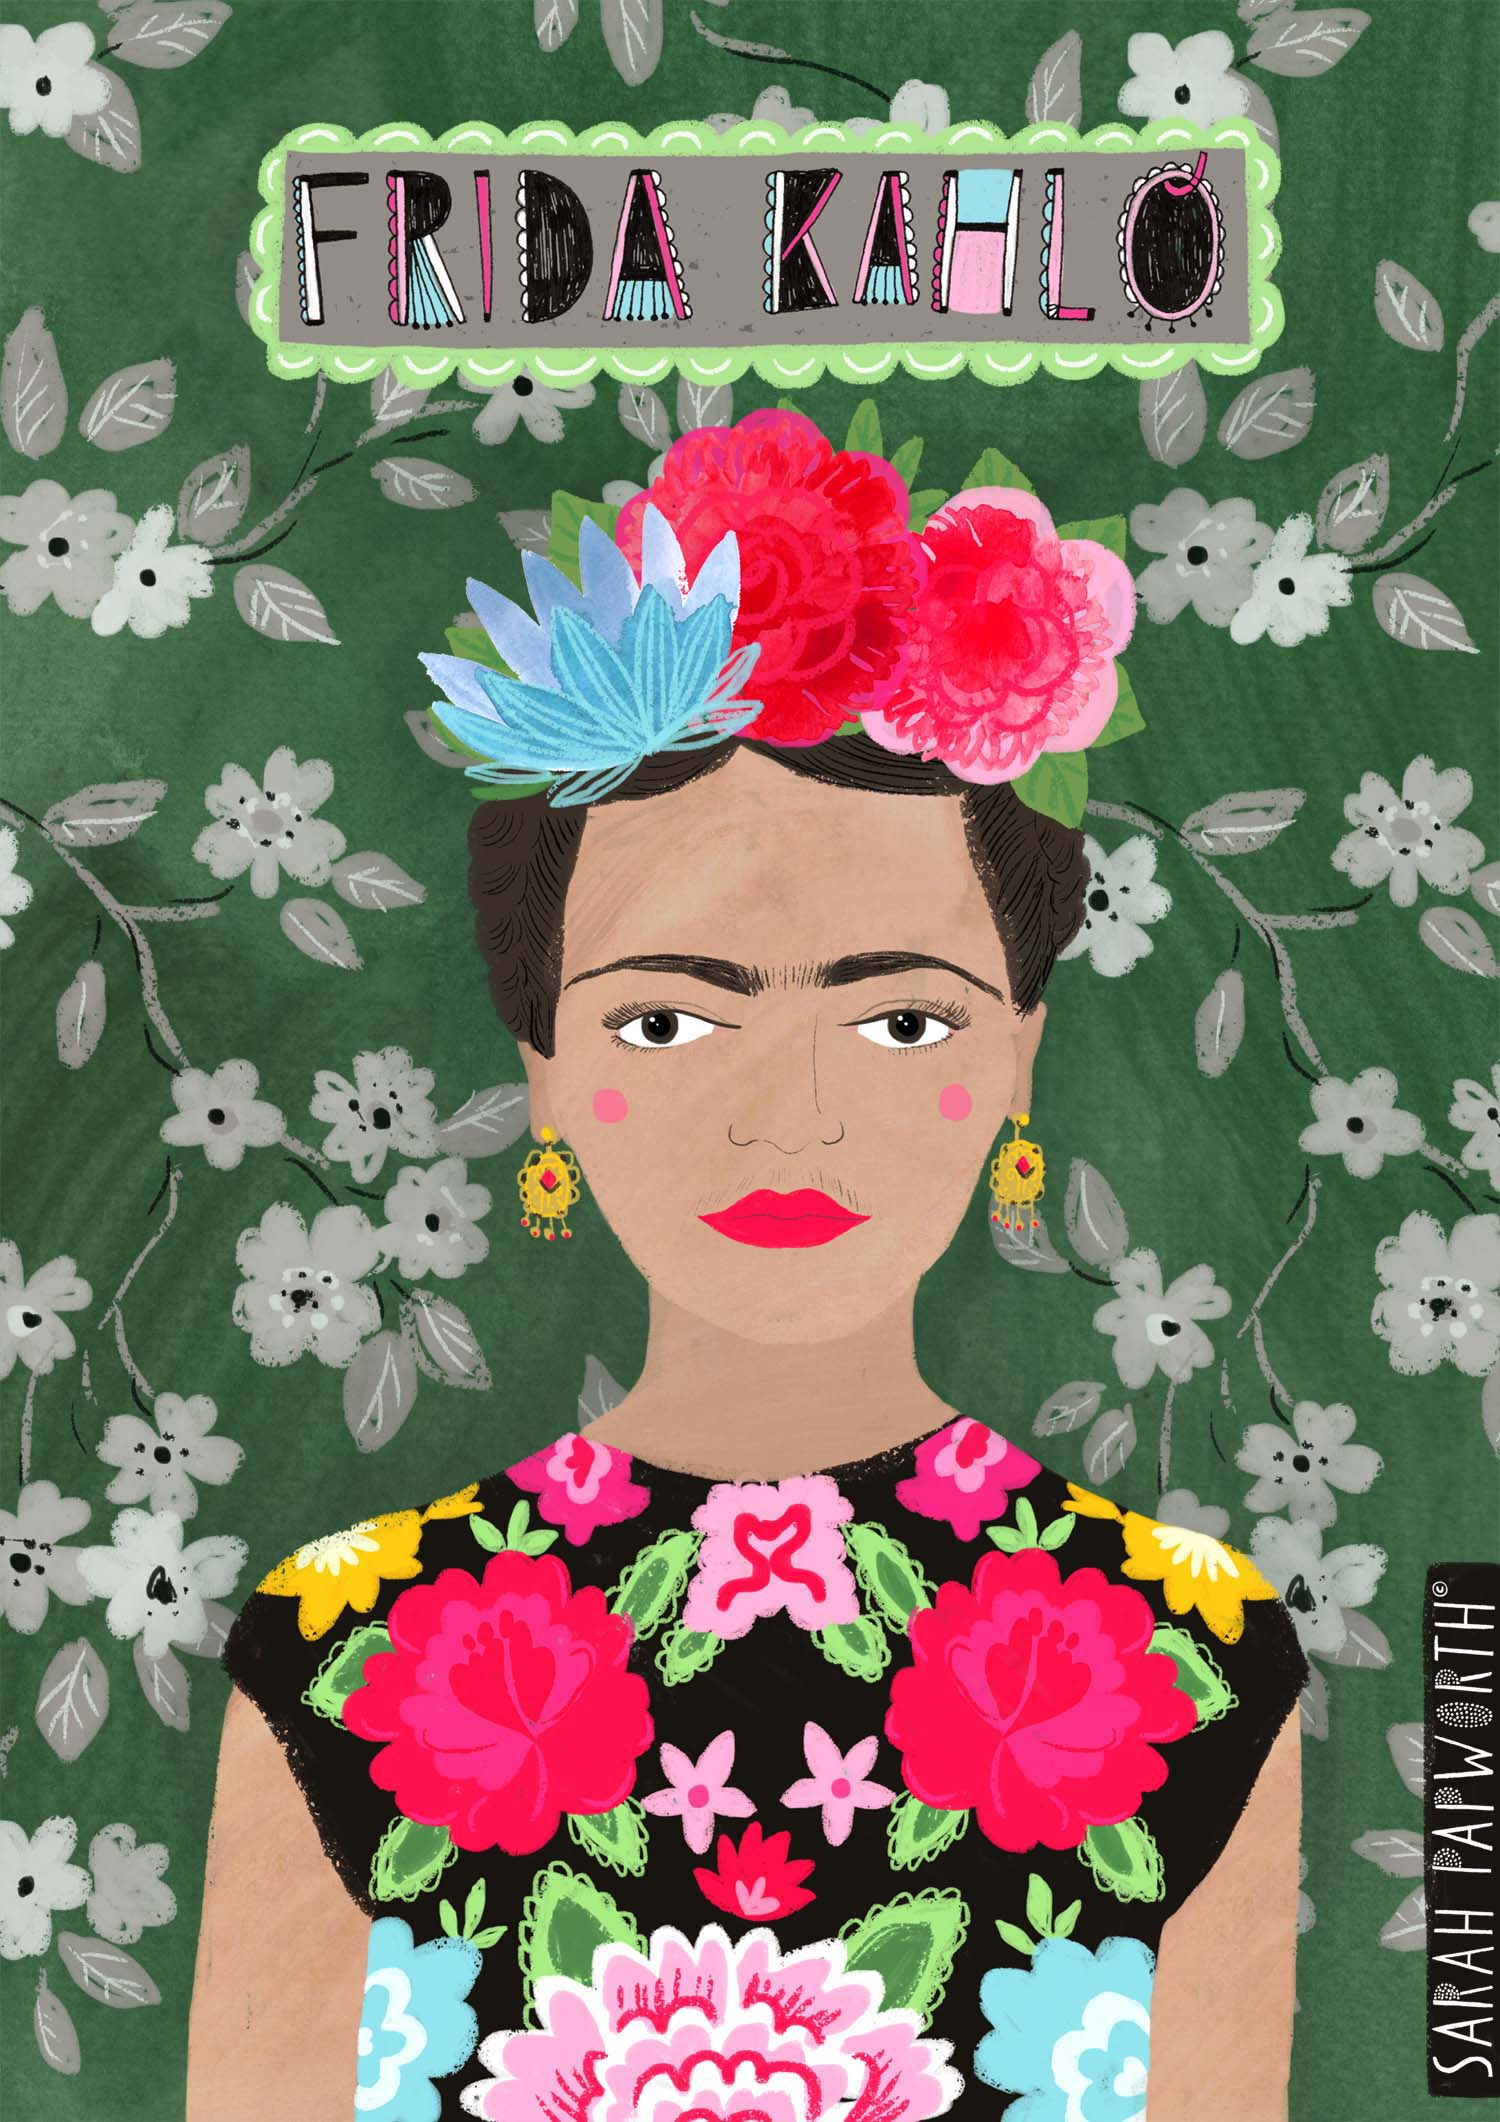 frida khalo print artwork published book art sarah papworth.jpg